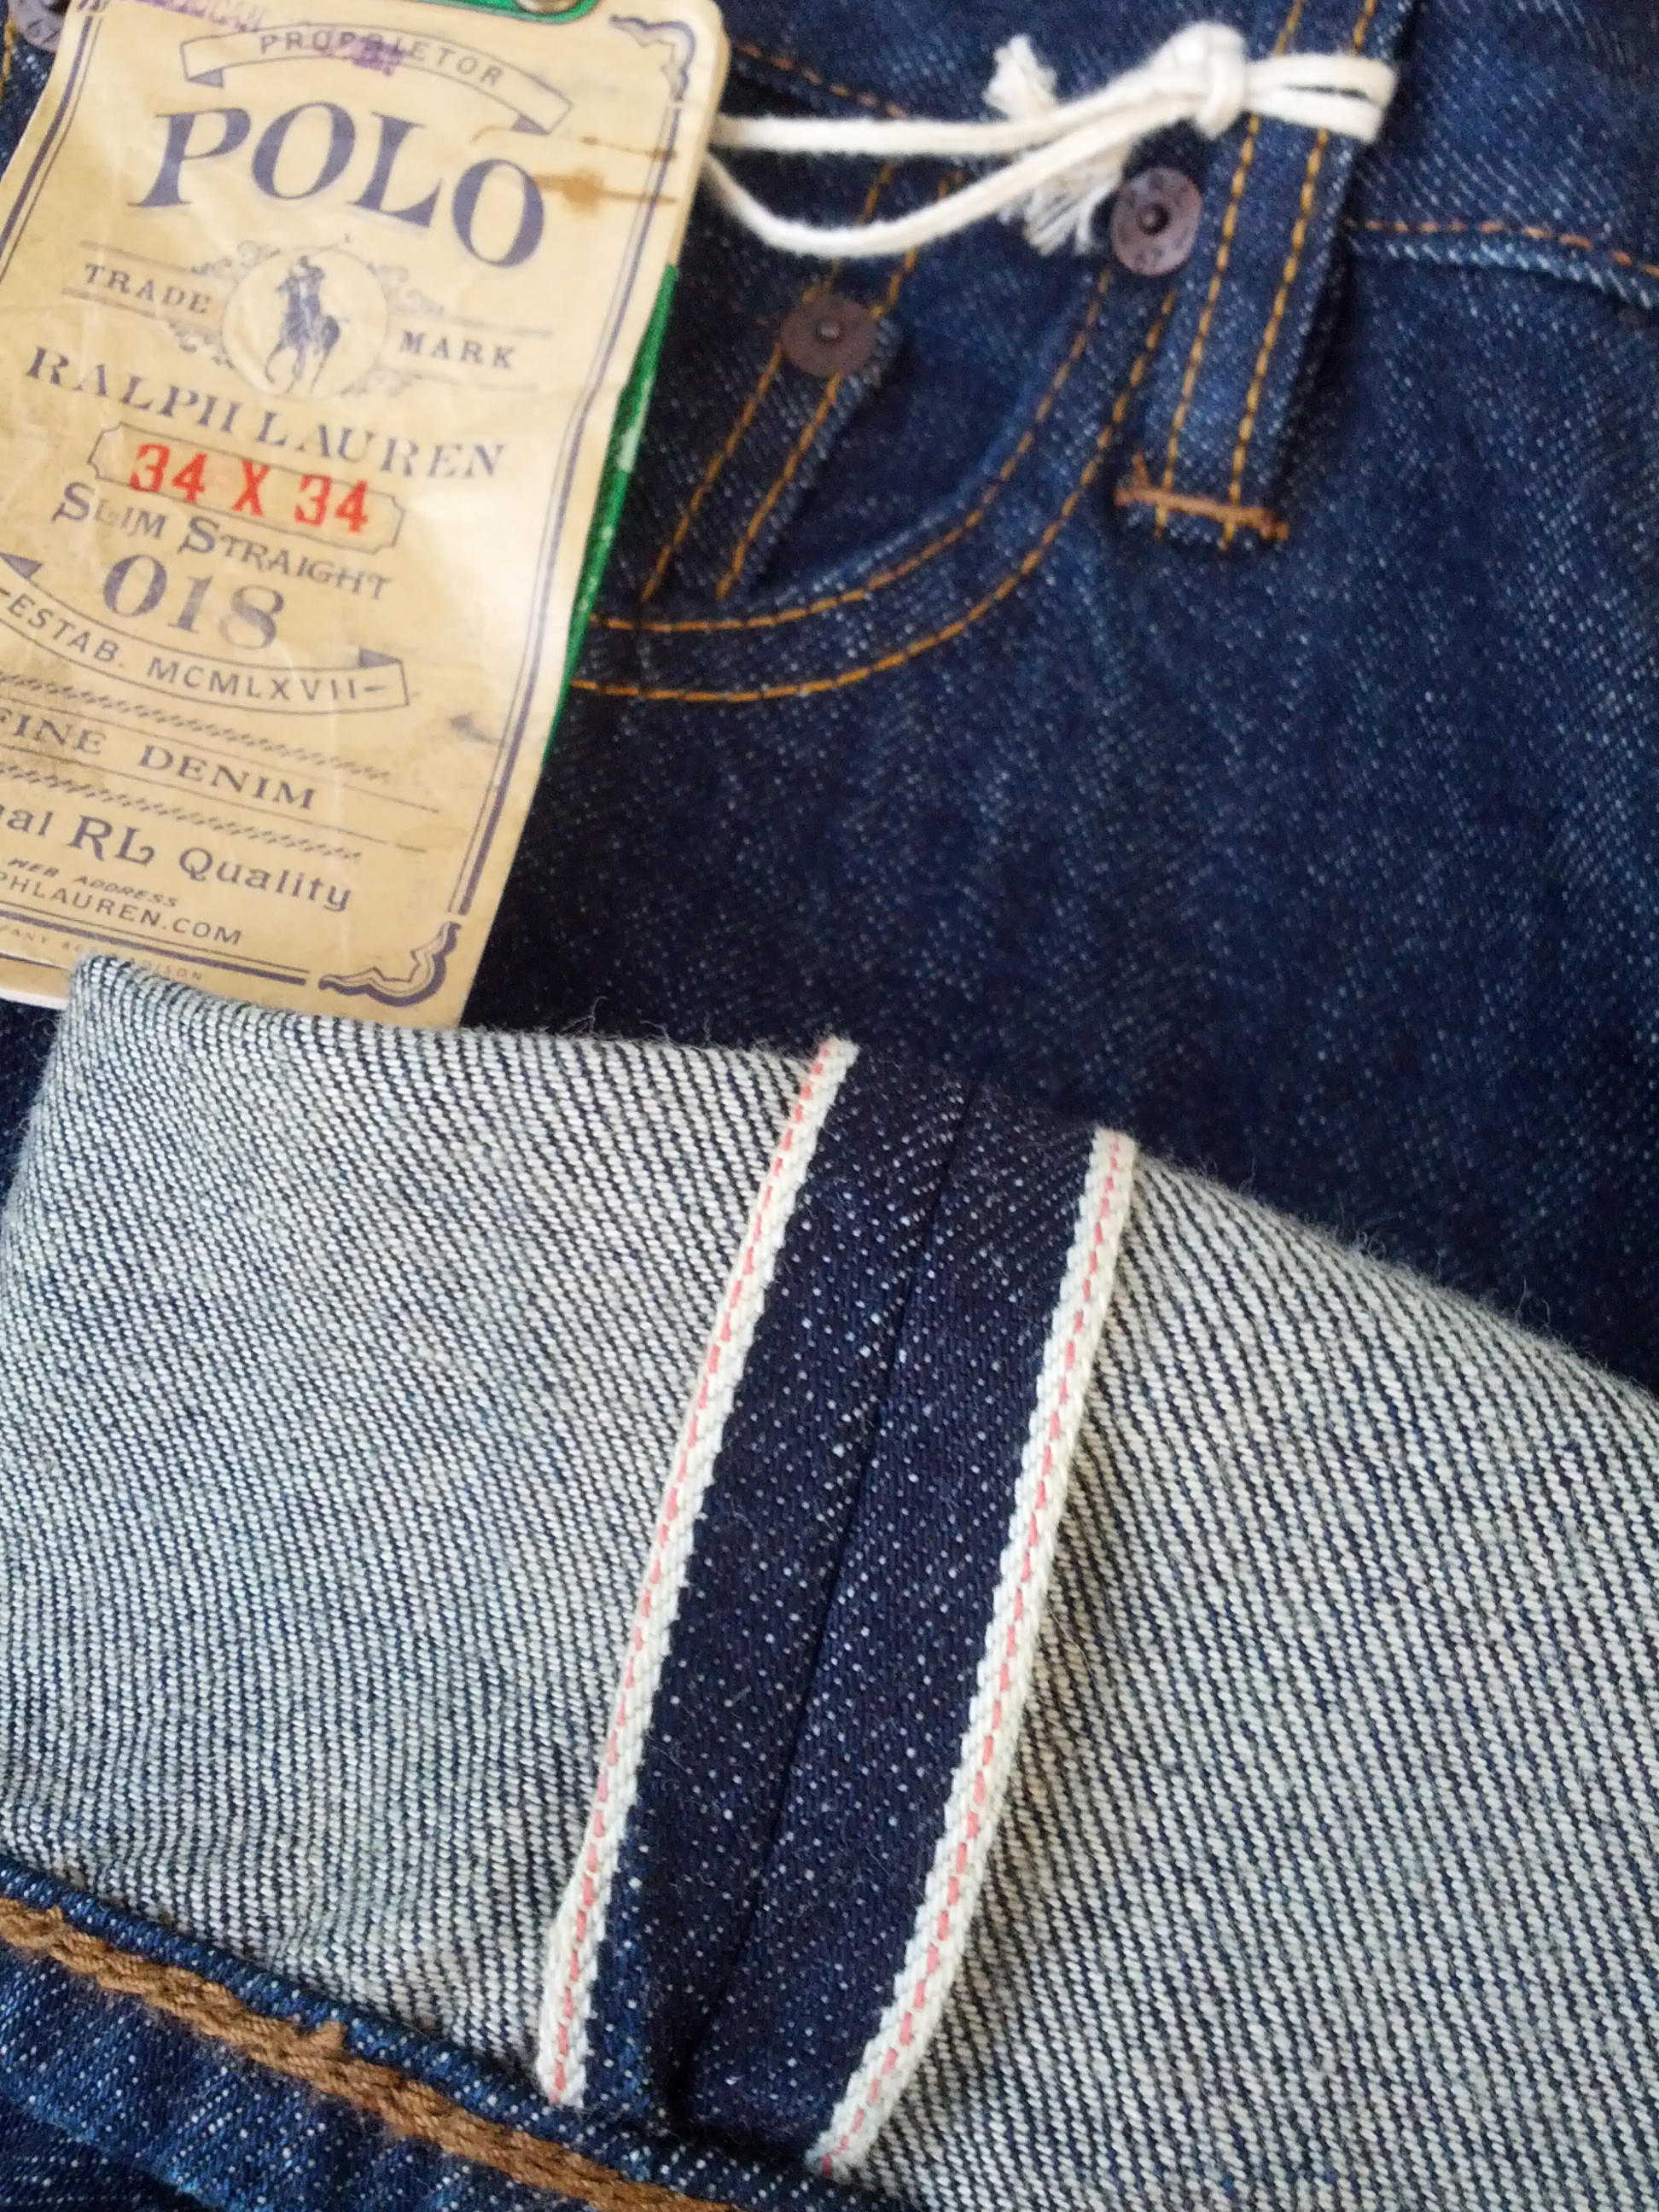 628e03291 Polo Ralph Lauren ×. Slim Straight 018 Selvedge